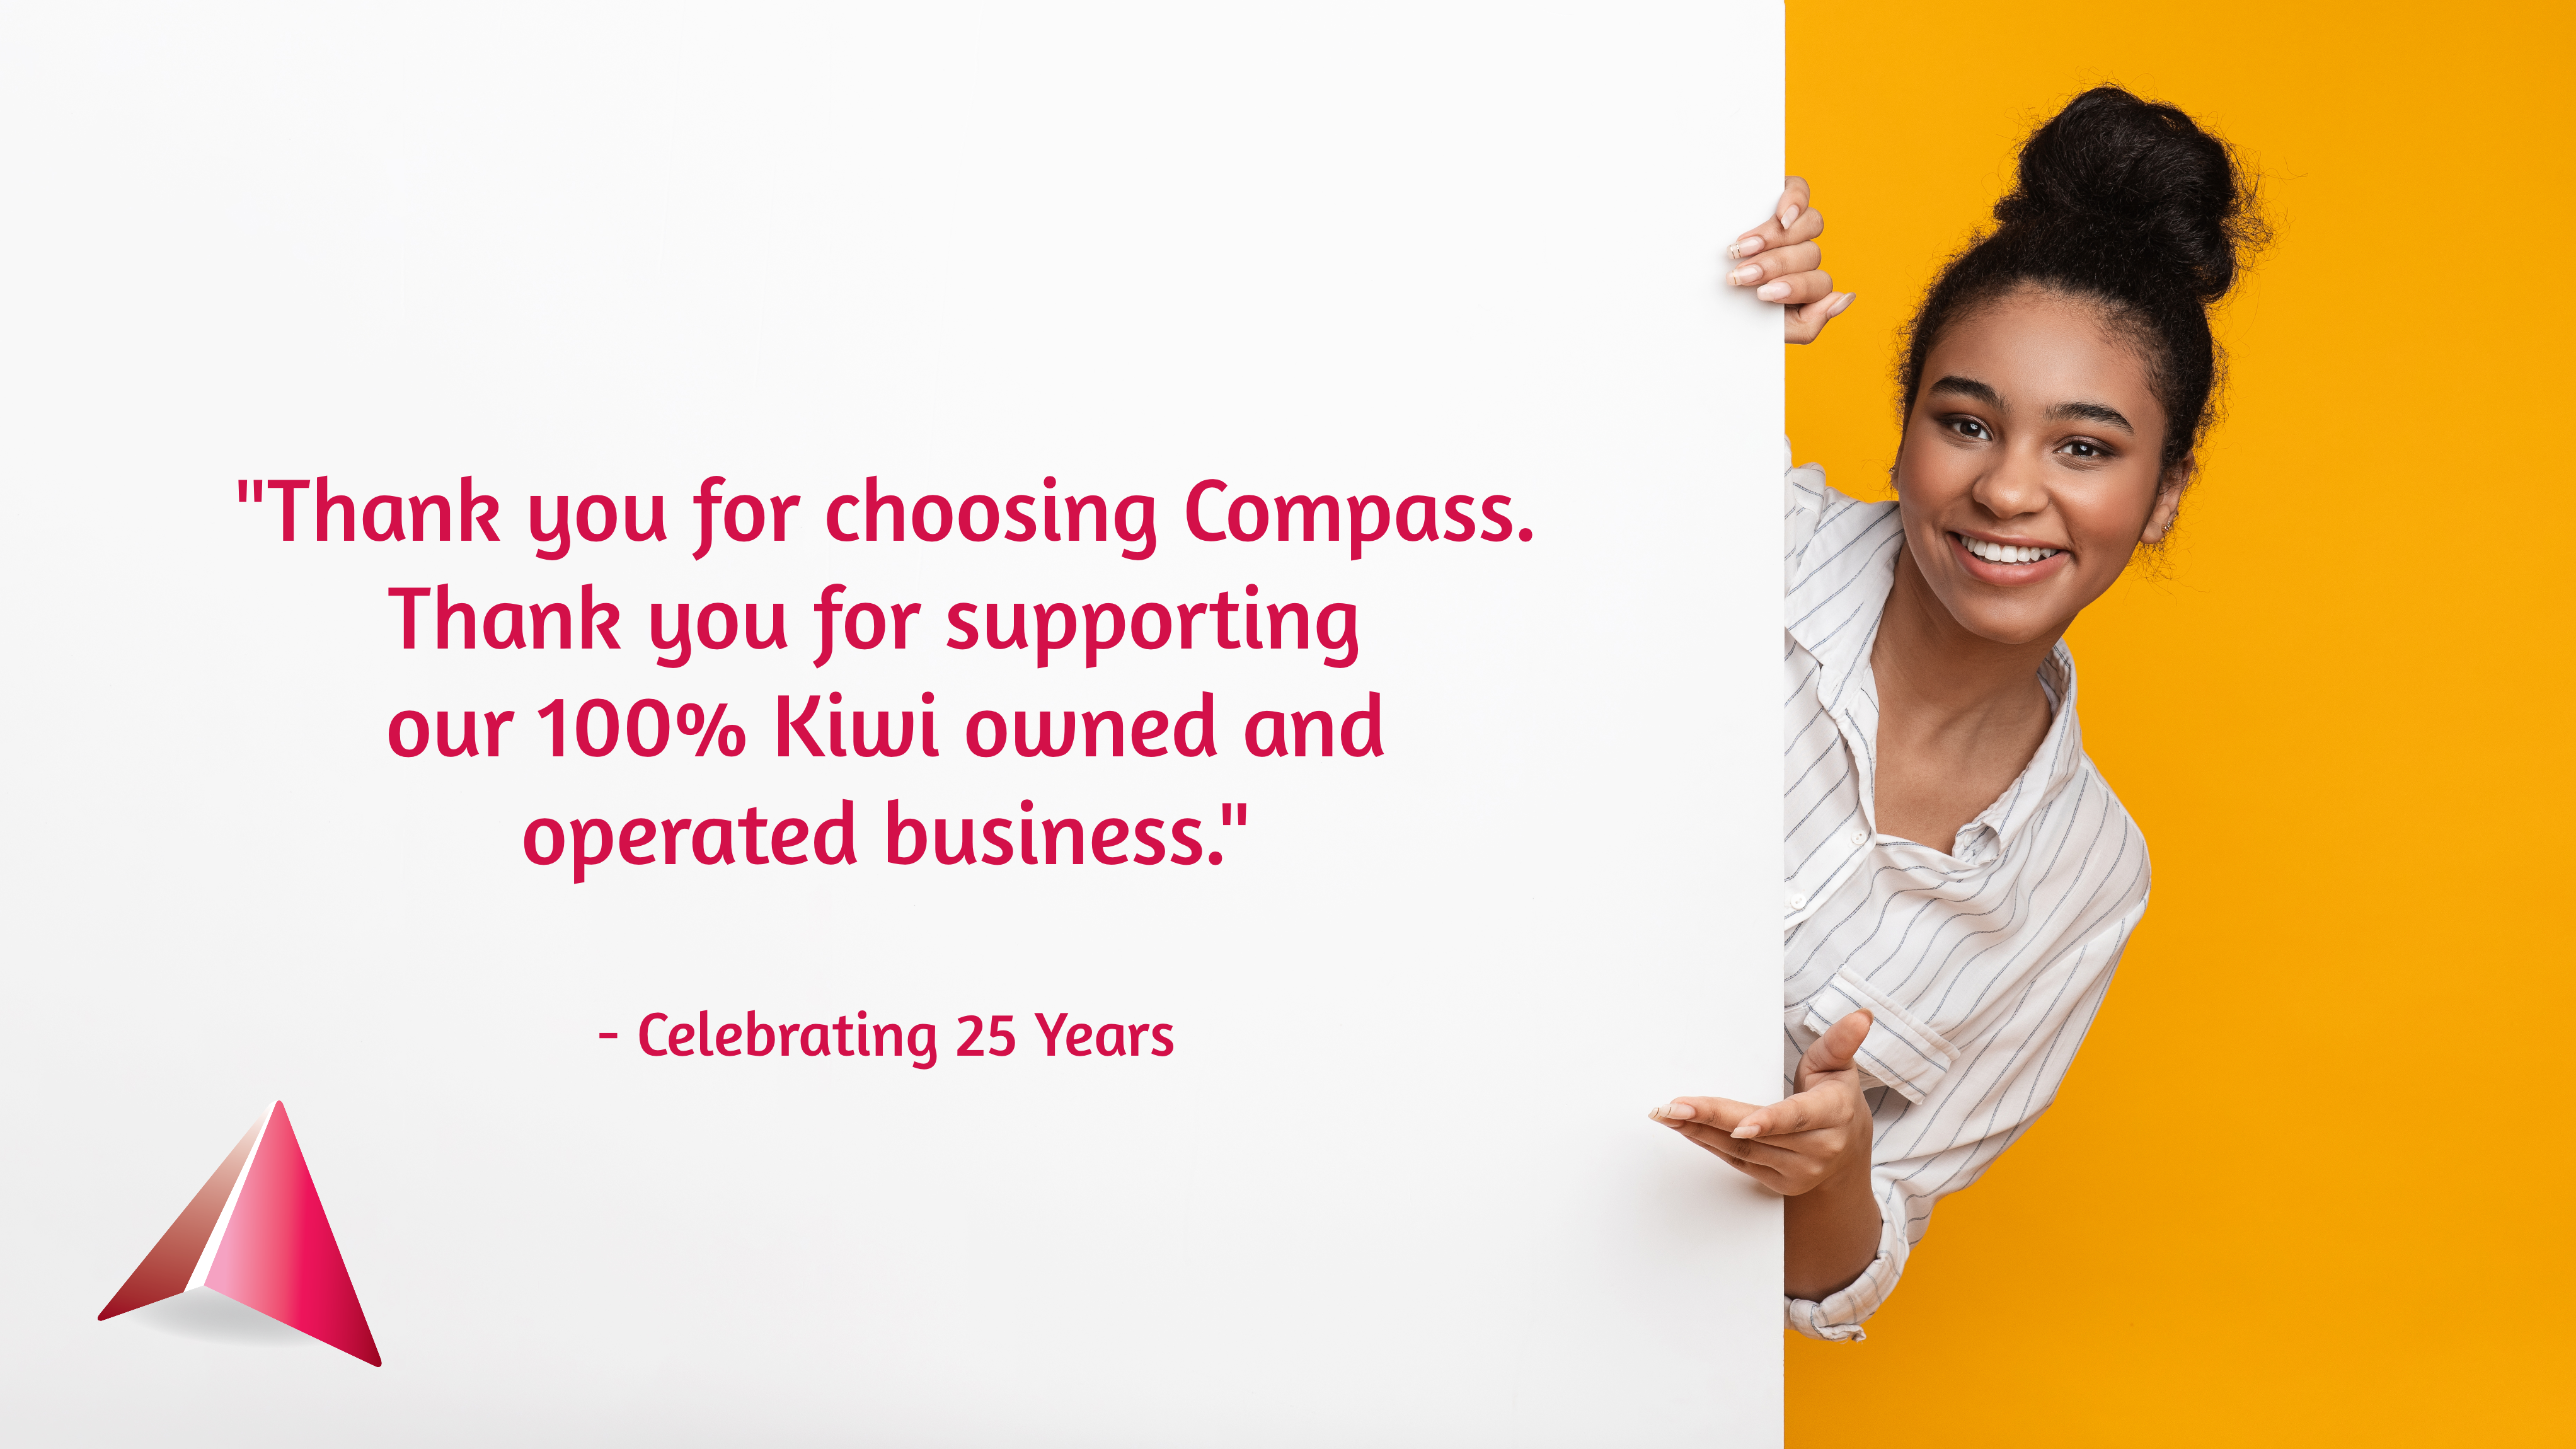 Compass Communications celebrating 25 years